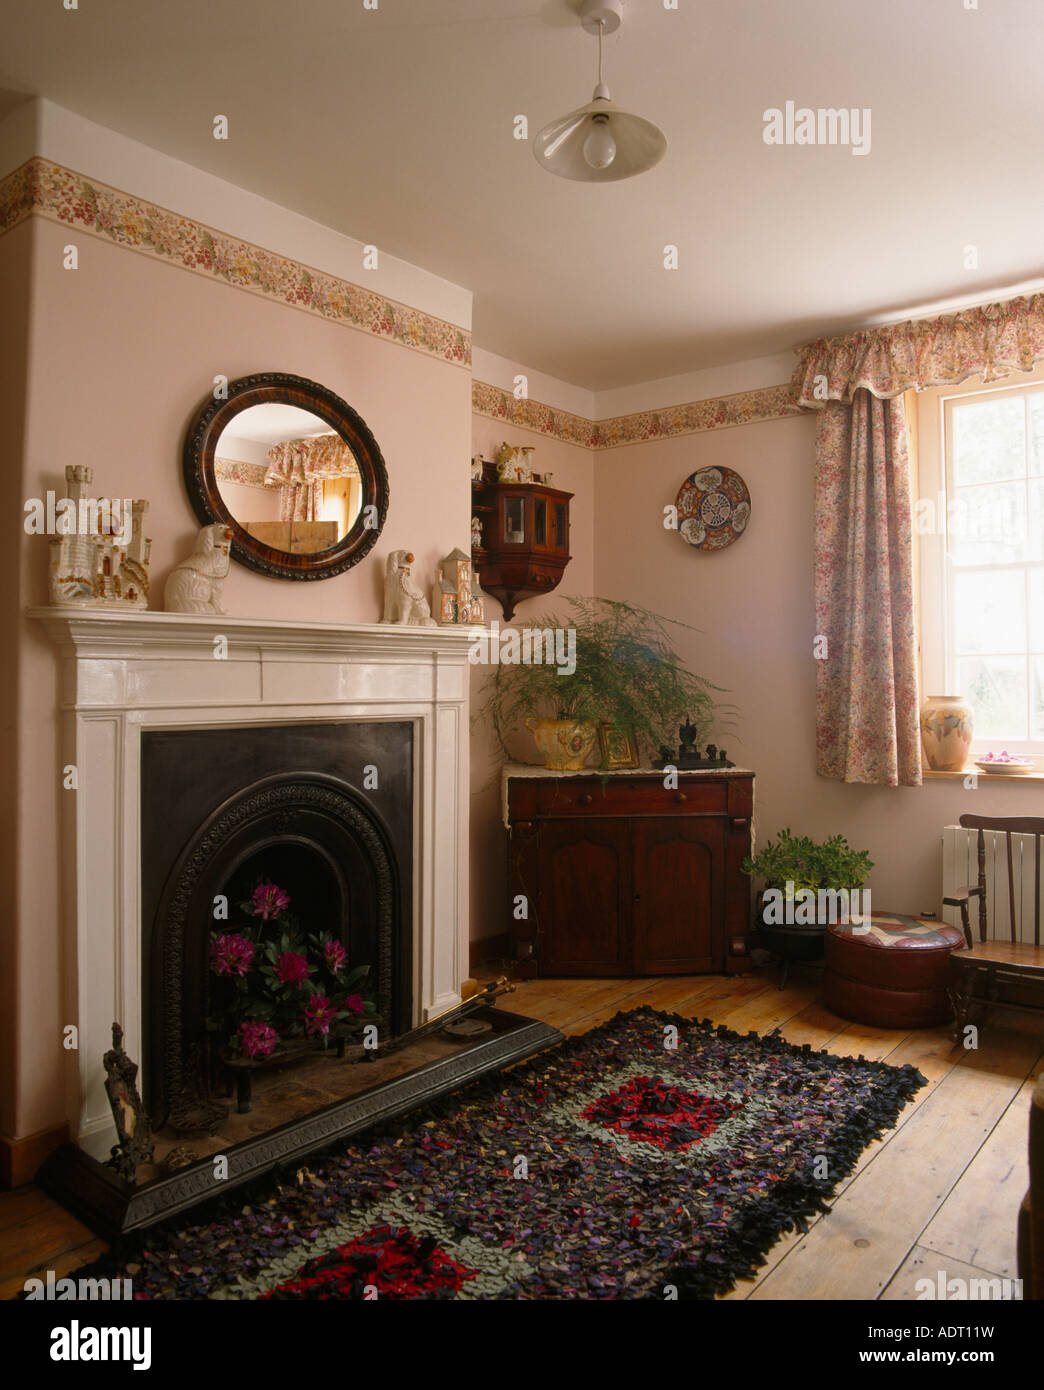 Rag Rug In Front Of Fireplace Small Livingroom With Wallpaper Border